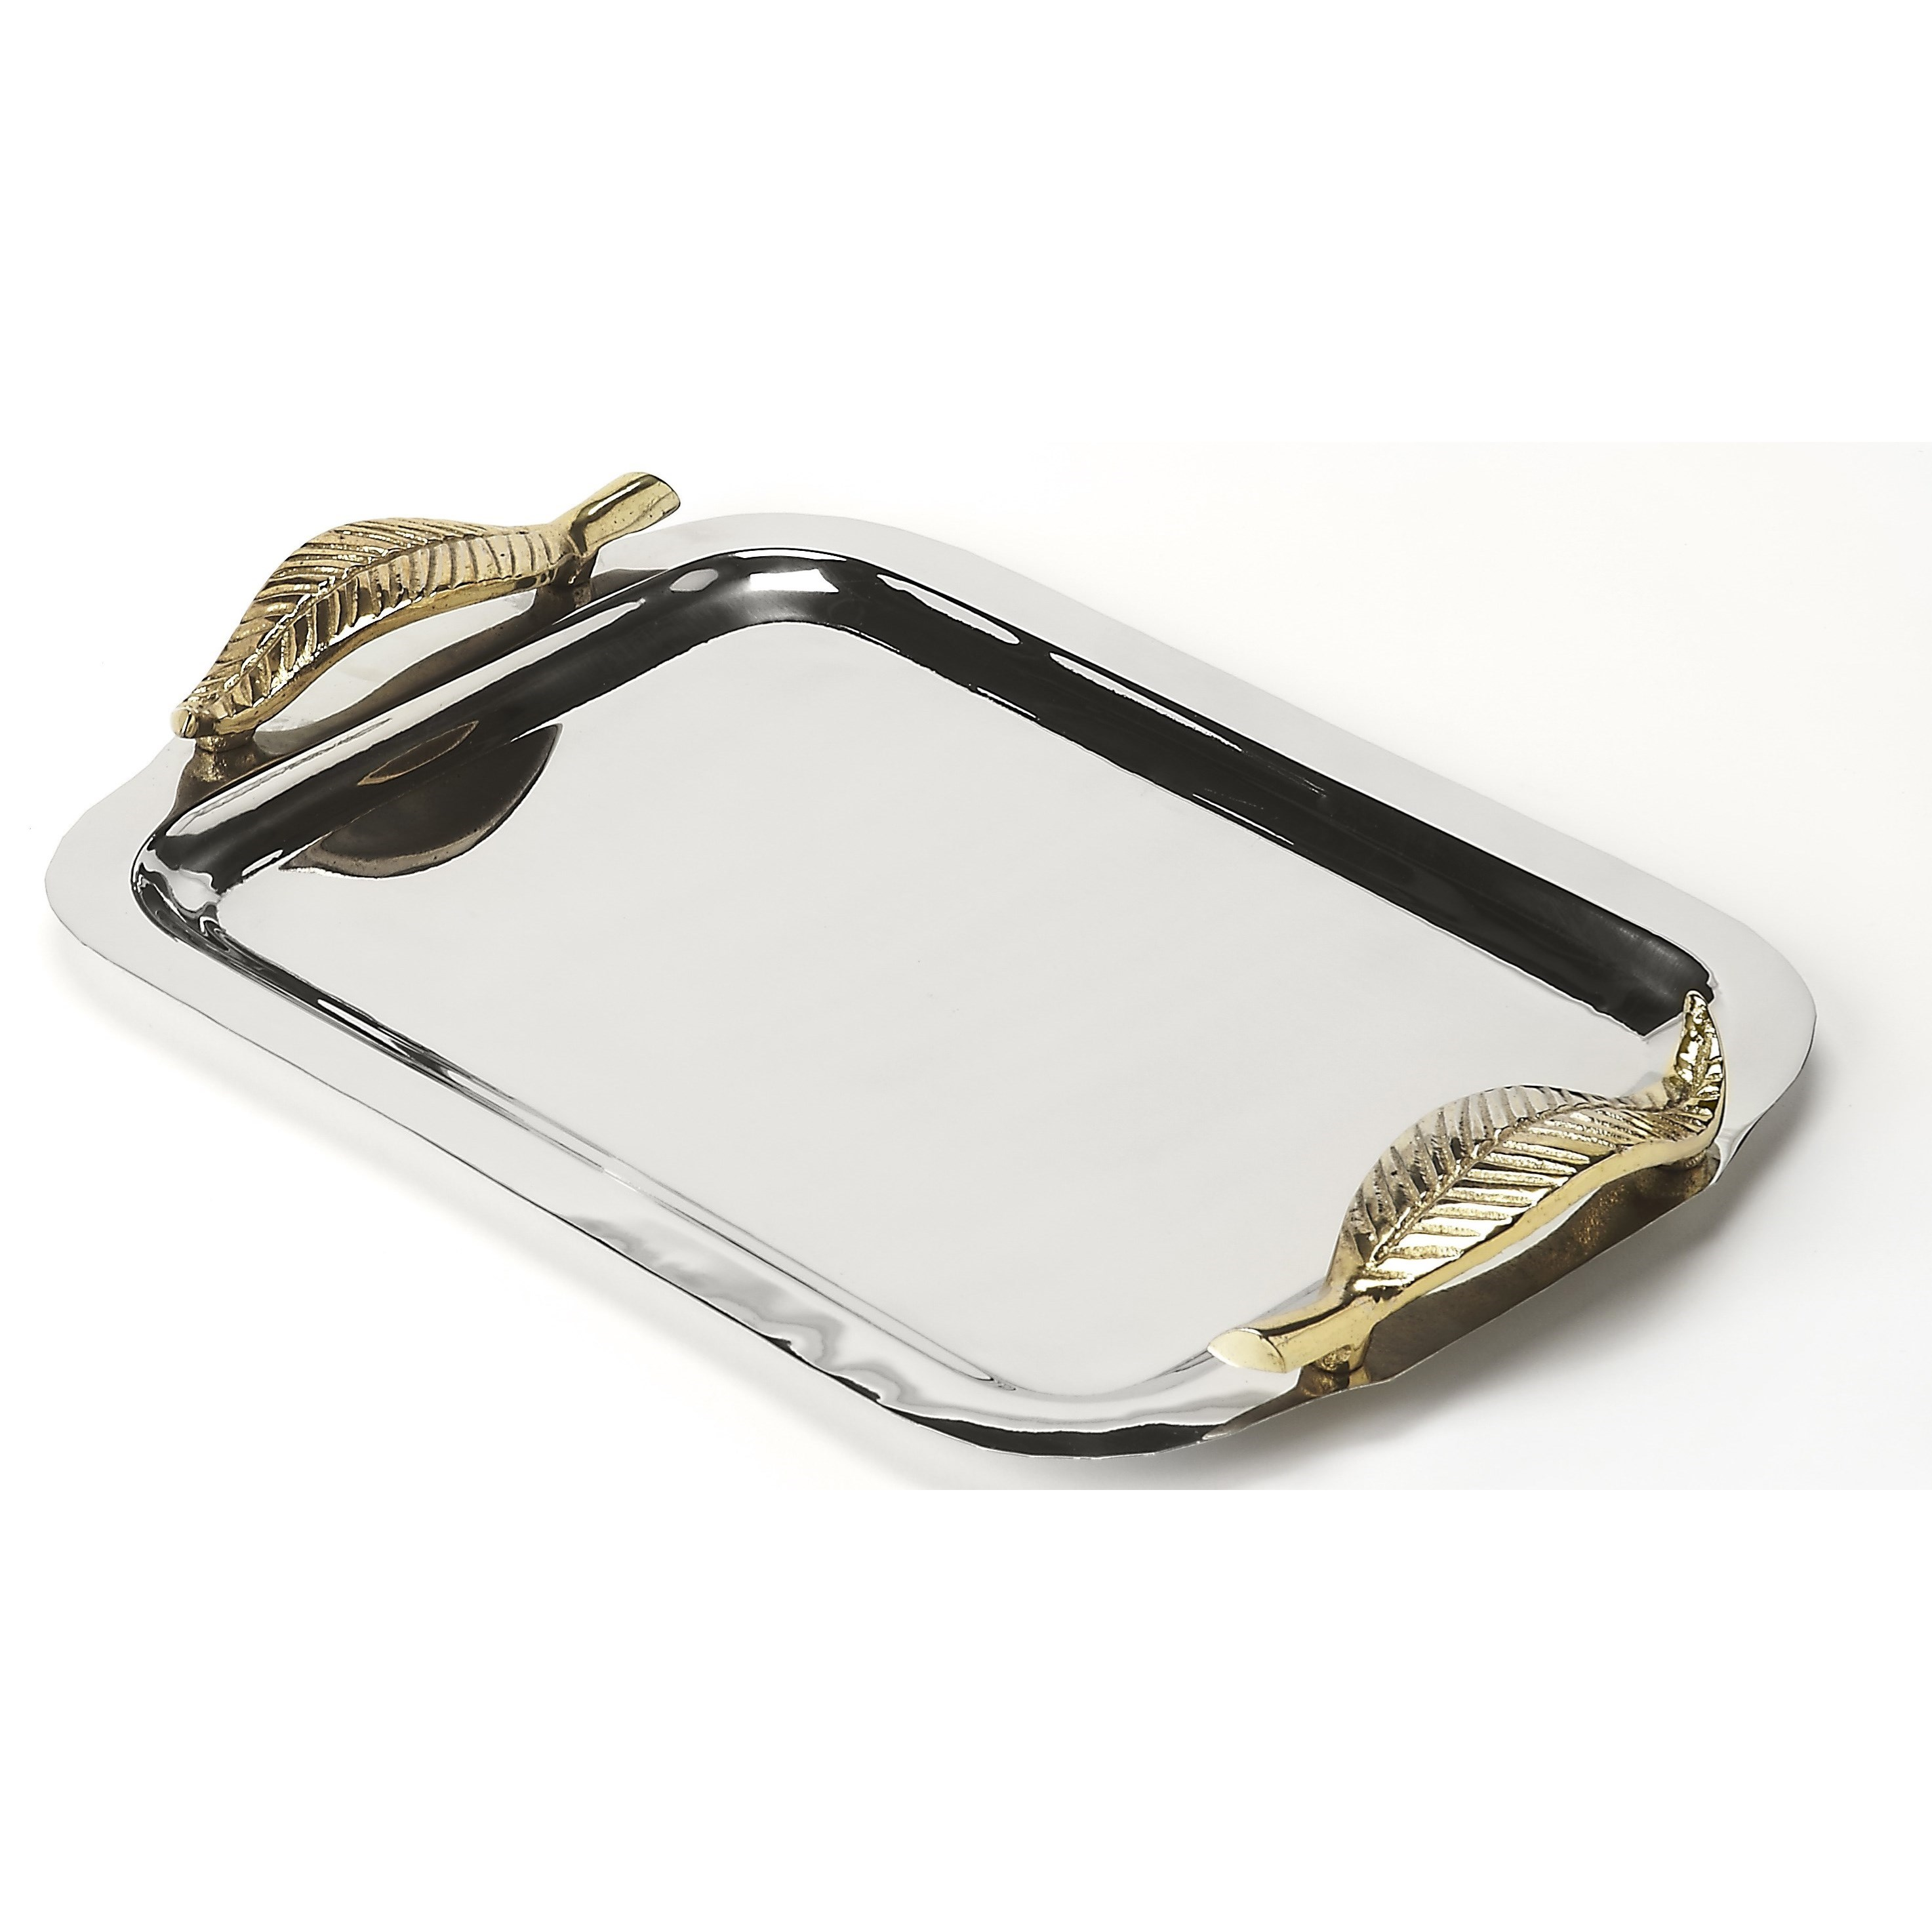 Butler Specialty Company Hors D'oeuvres Serving Tray - Item Number: 6192016